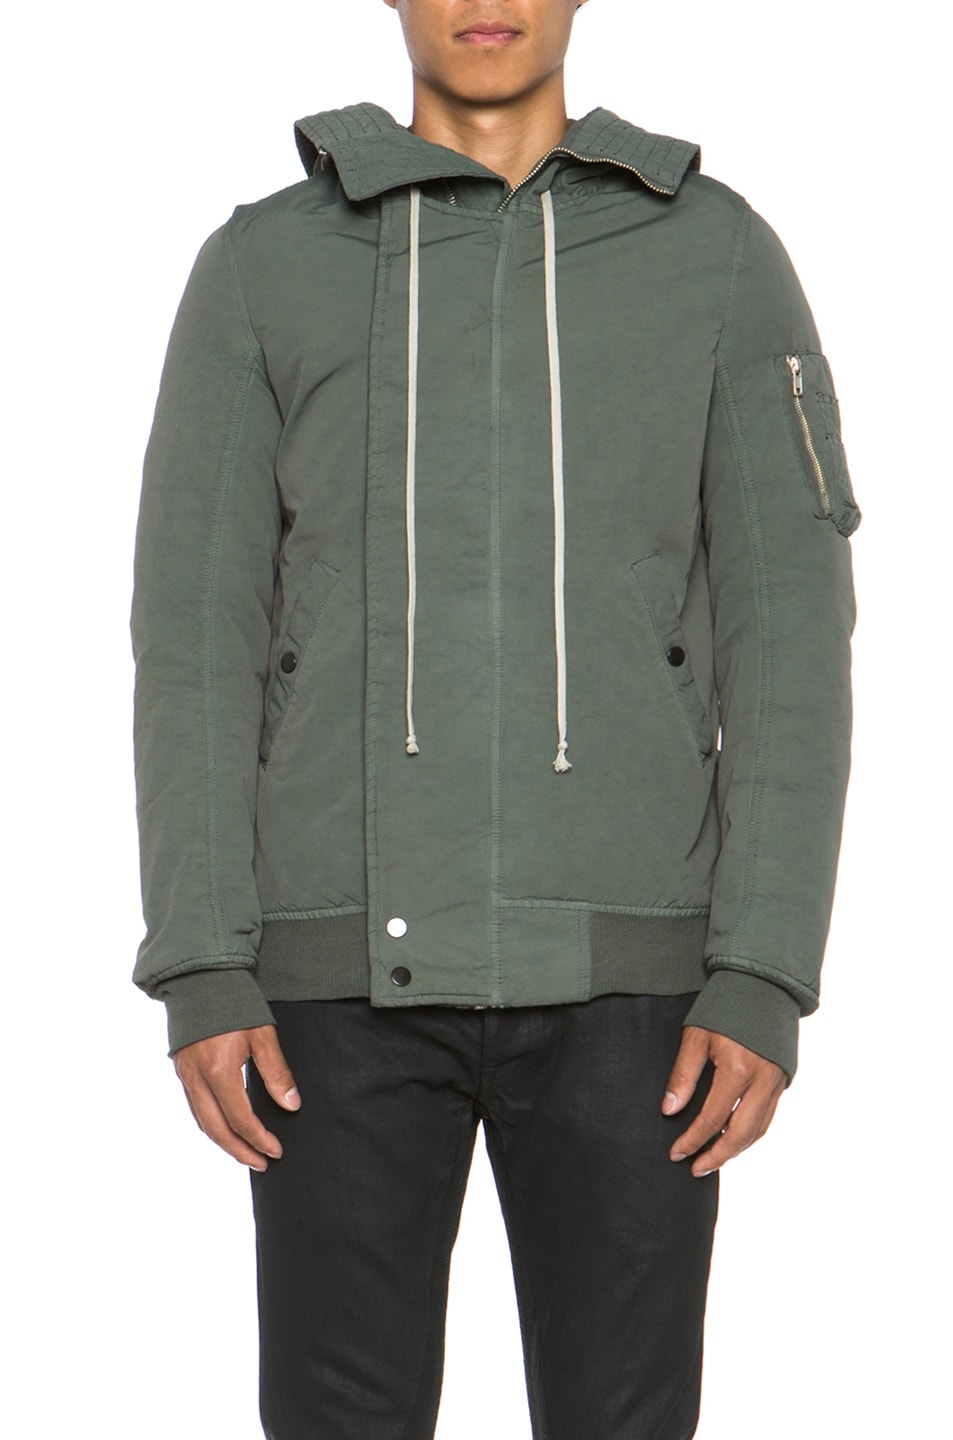 0a8bc1189 DRKSHDW by Rick Owens Murray Cotton Hooded Bomber in Jade ...